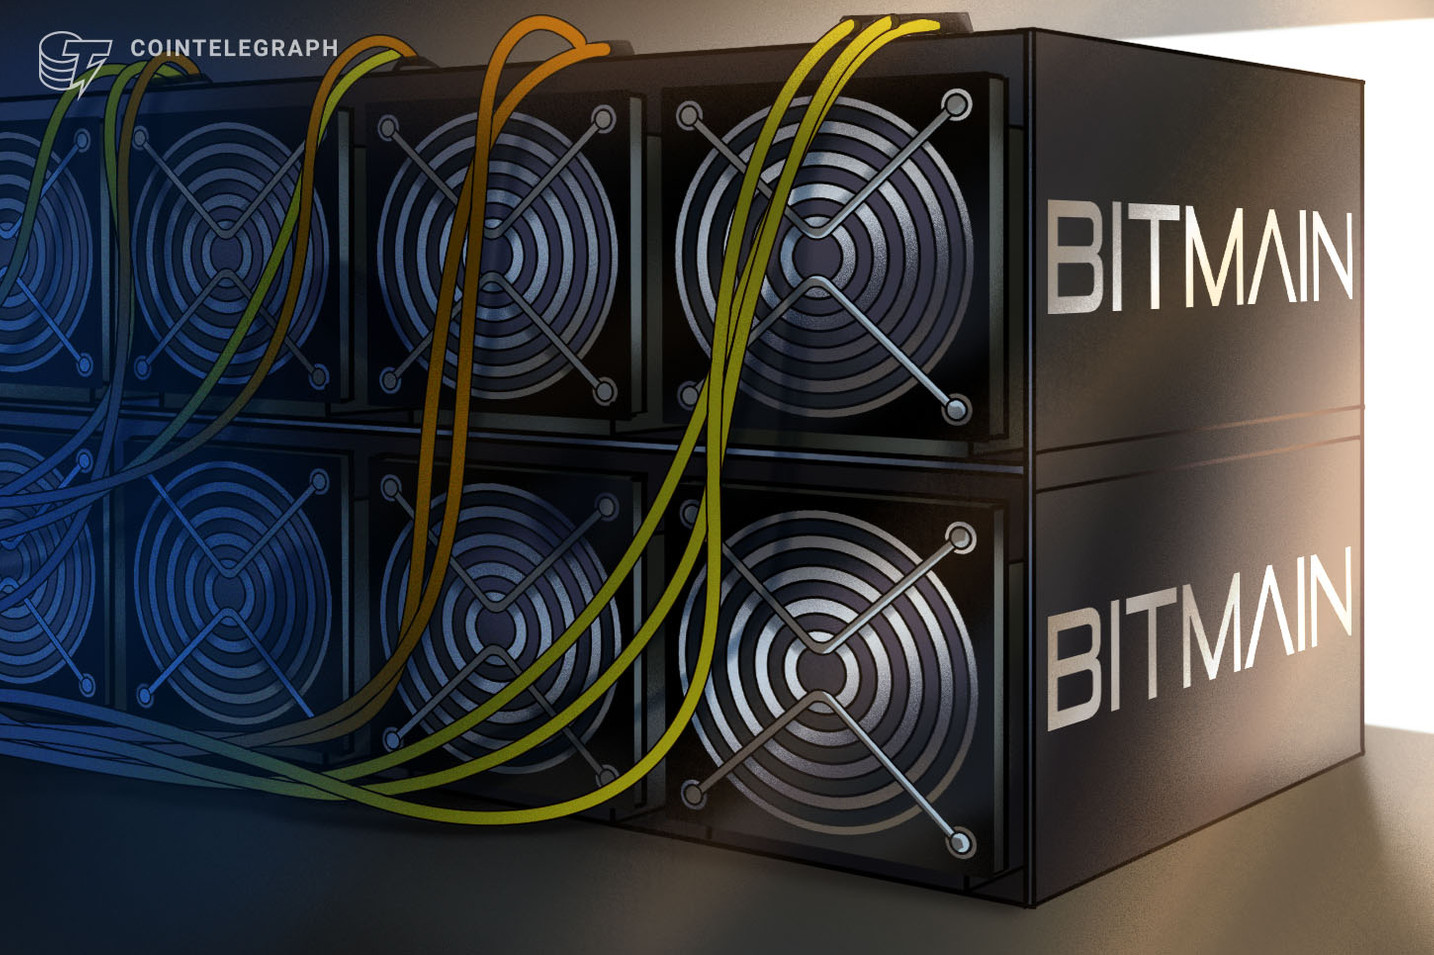 Bitmain Valuation to Hit $12B With New 600K Chip Order, Source Says